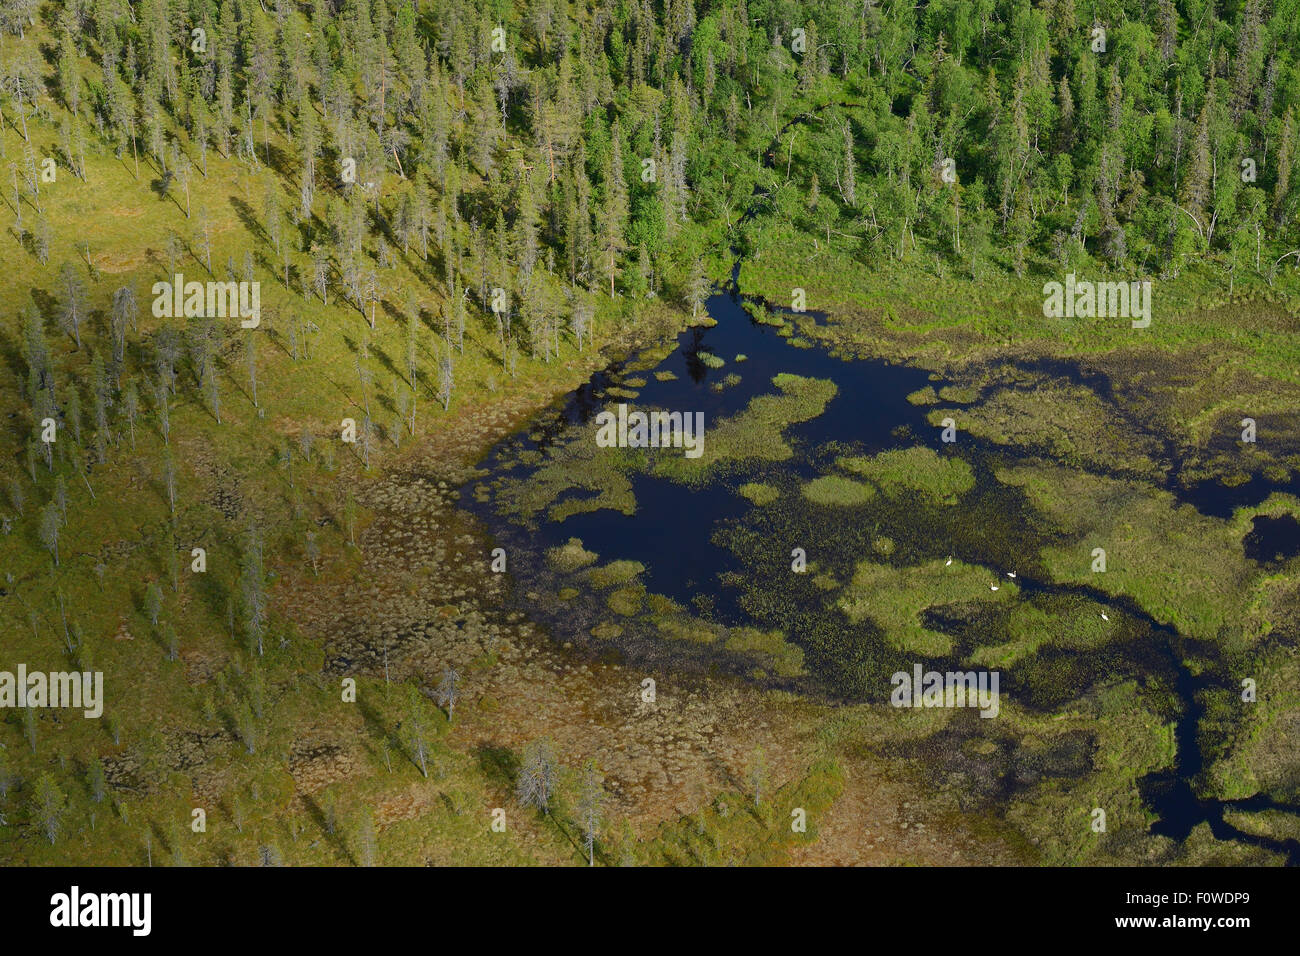 Aerial view of peat bogs and taiga boreal forest, Sjaunja Bird ...